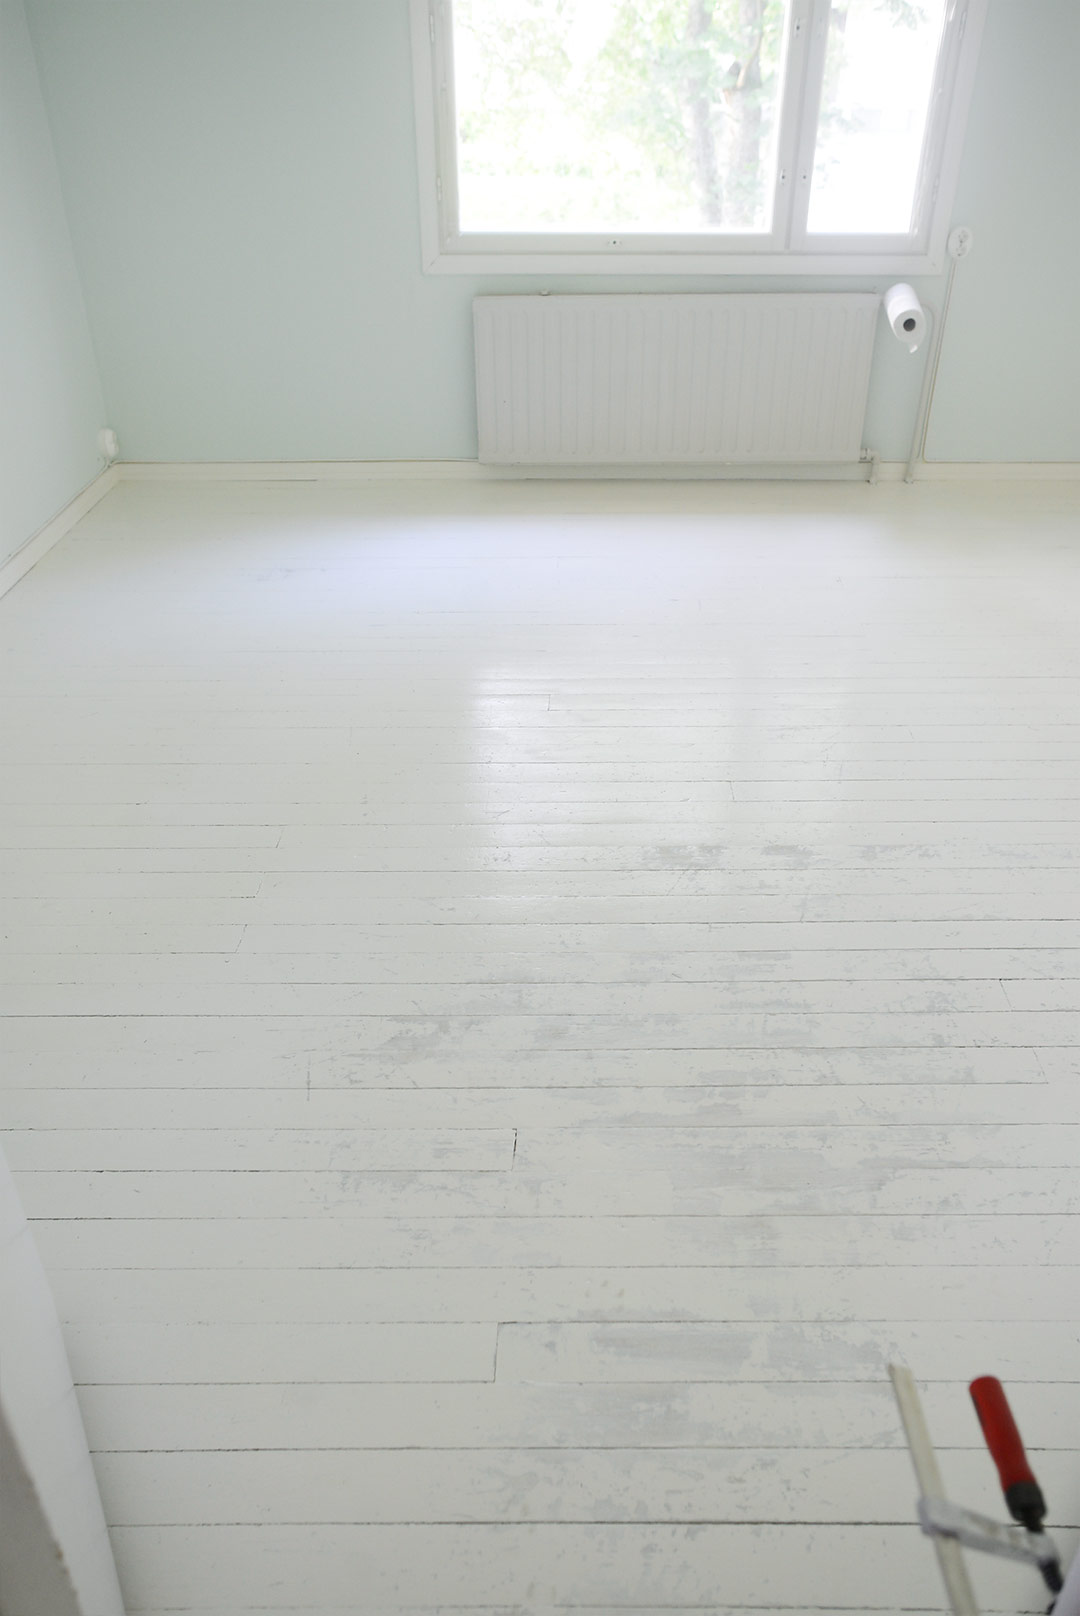 Floor after one coat of paint